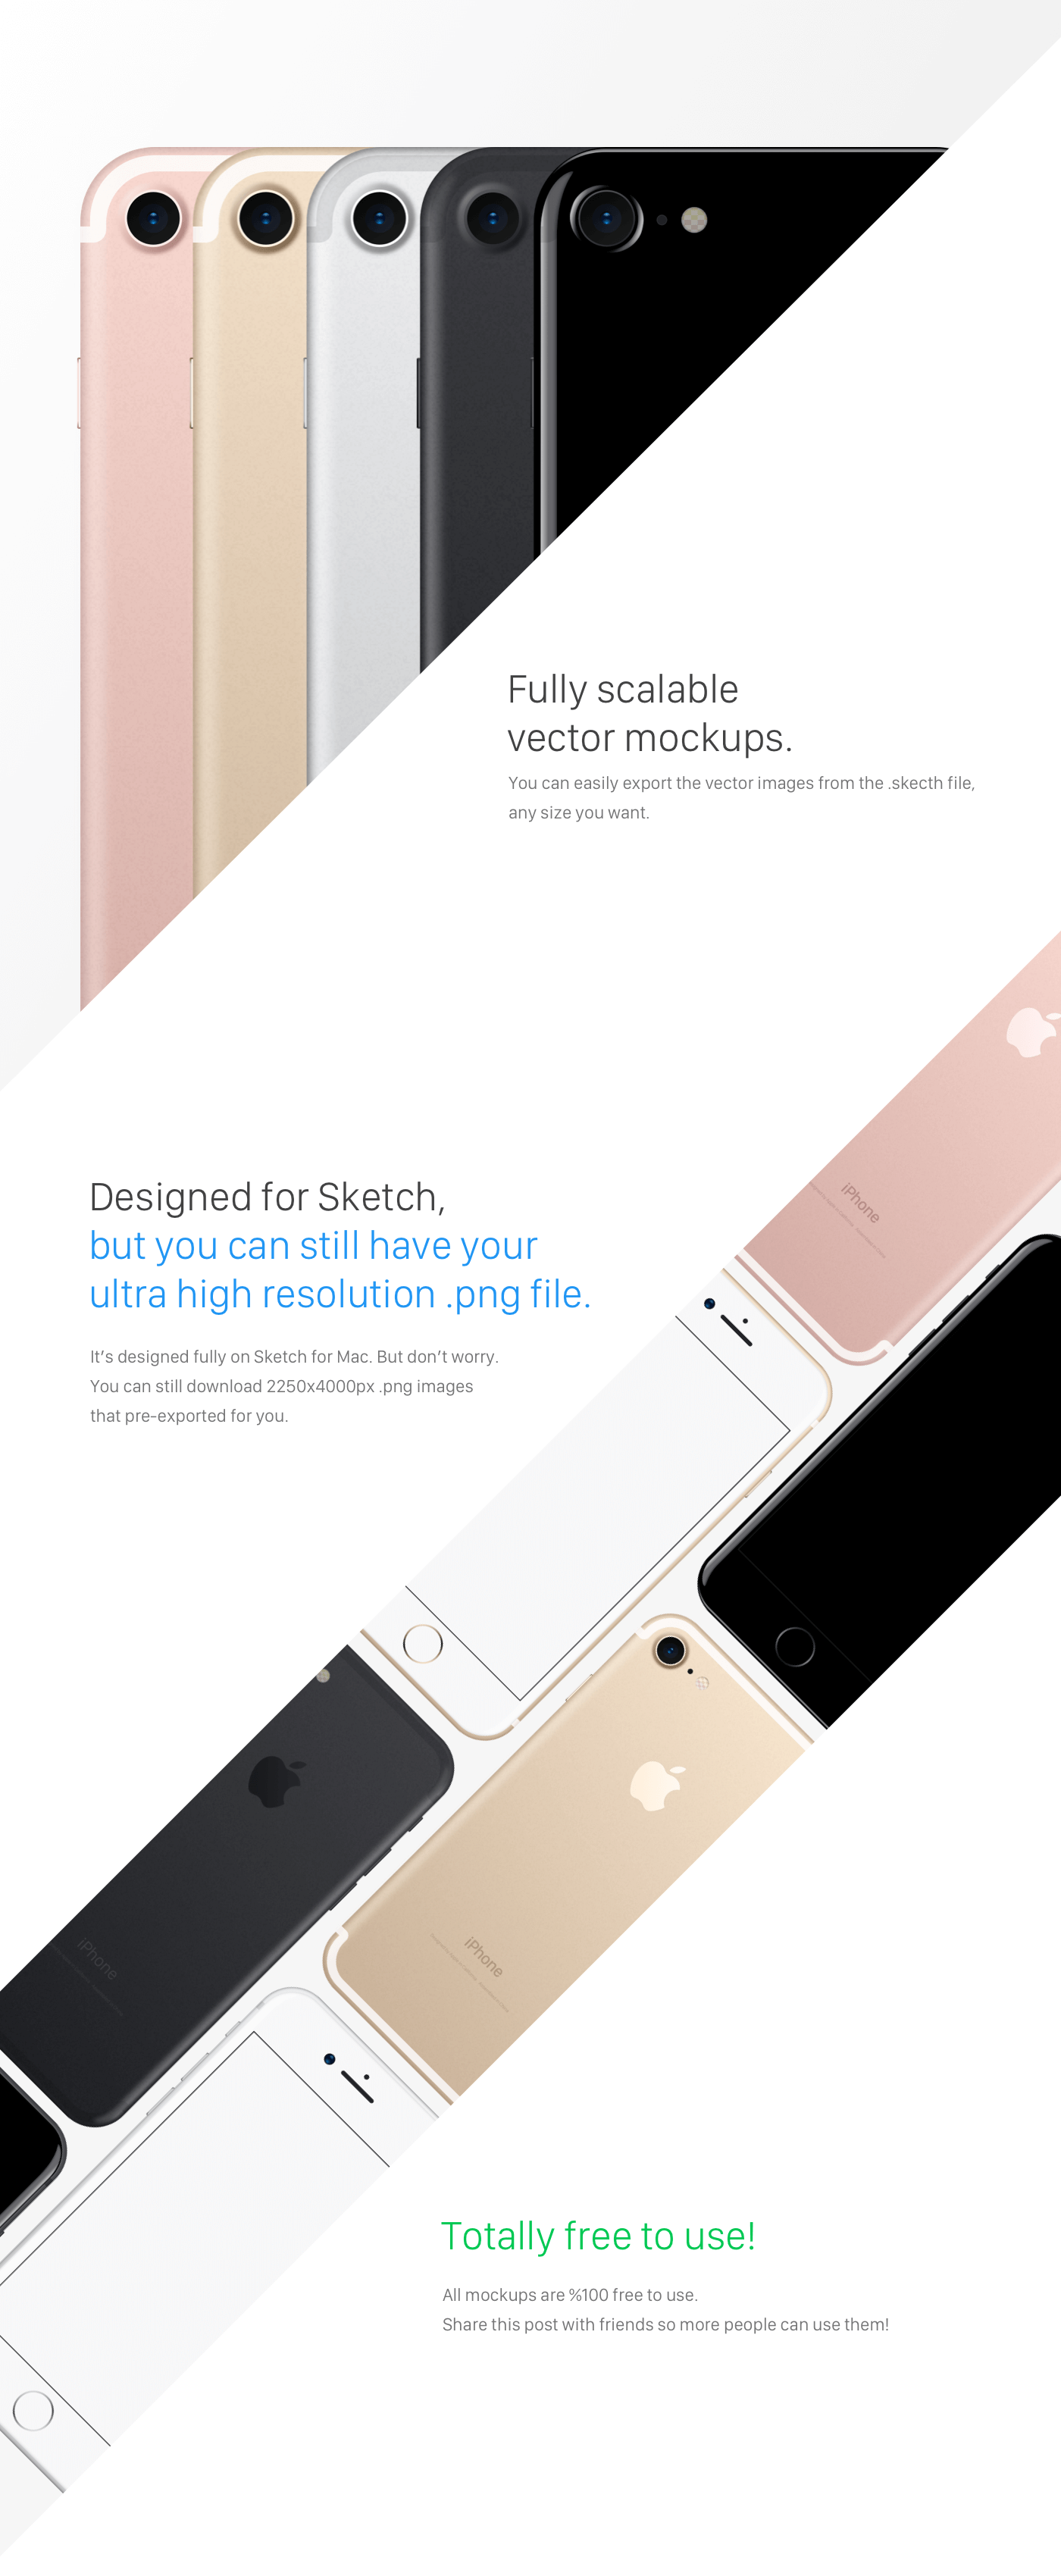 Fully scalable vector mockups - iPhone 7 Mockups All Colors